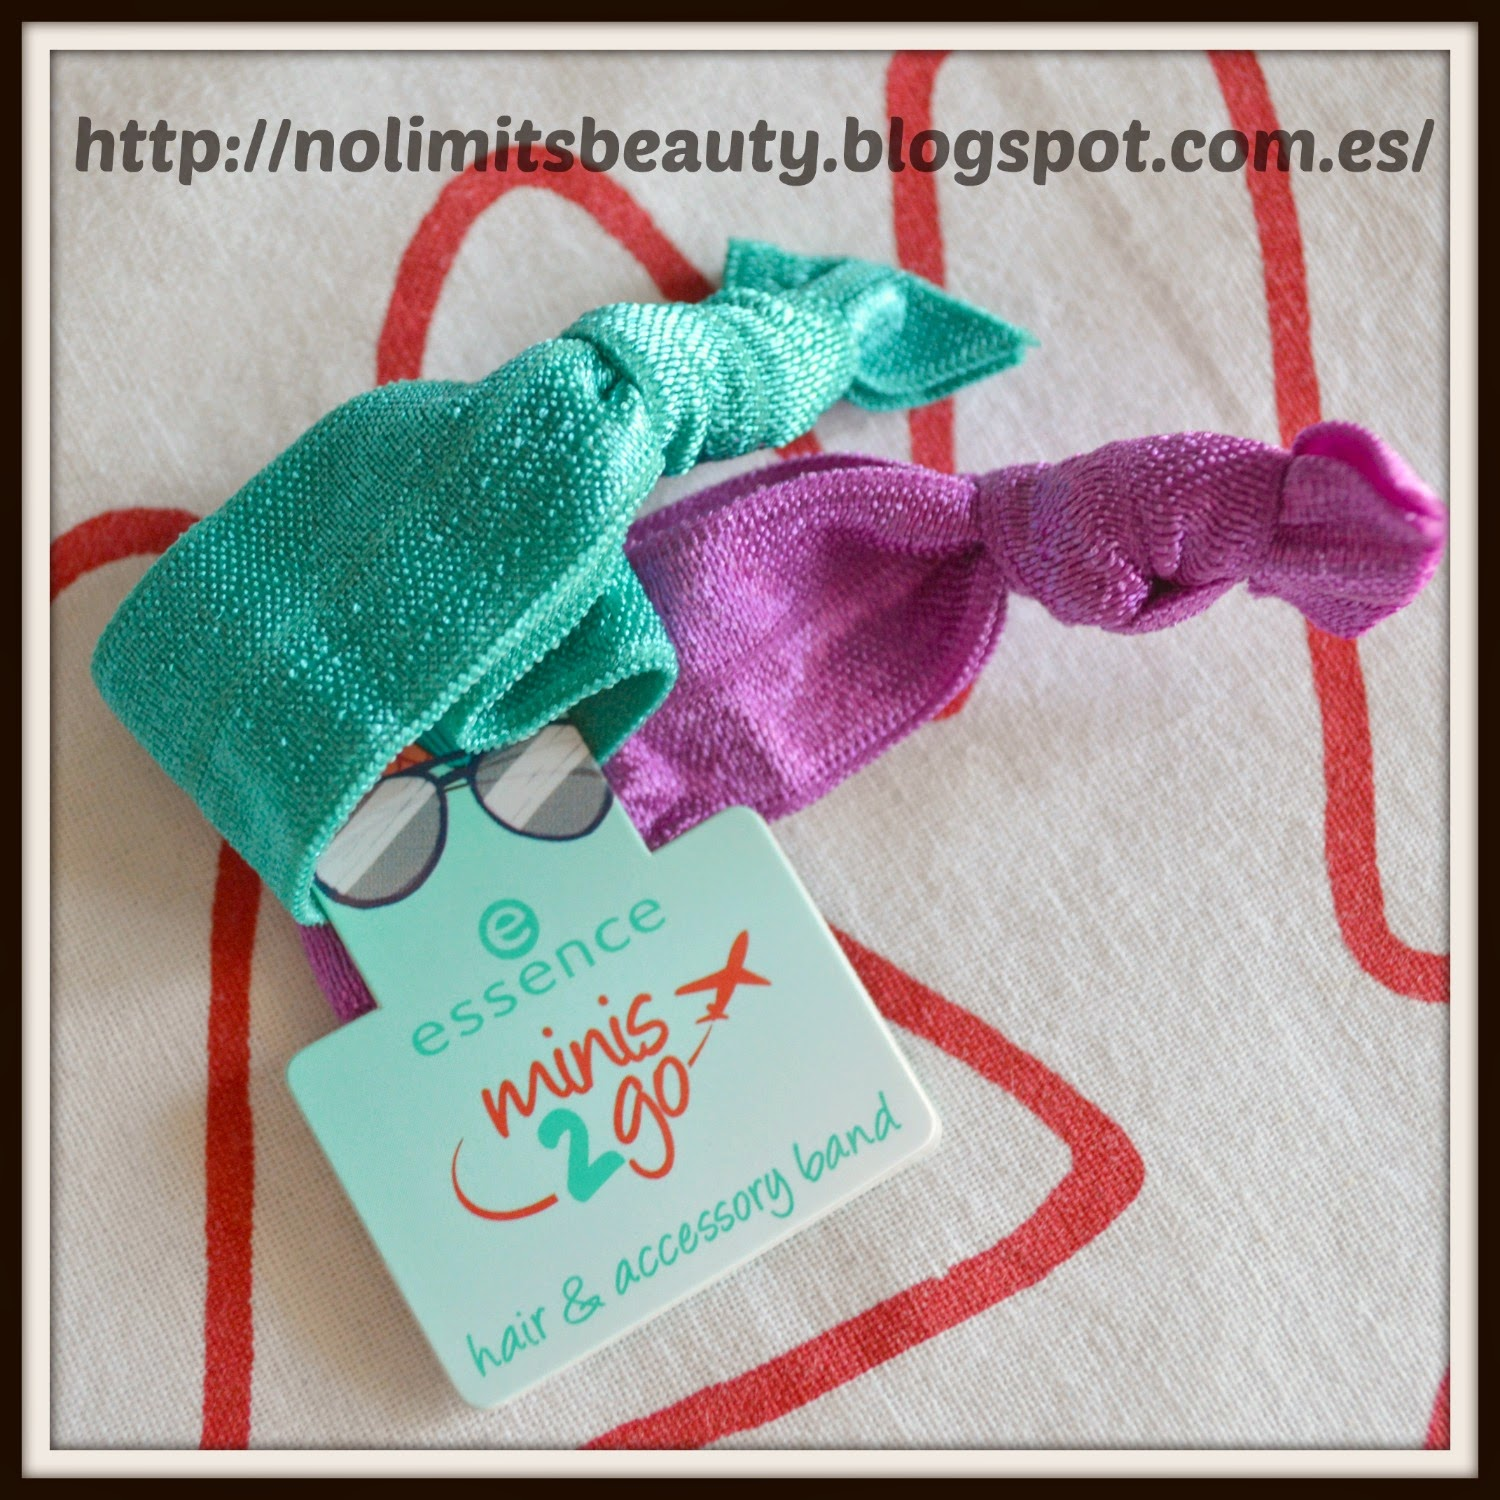 Hair Bands de Essence